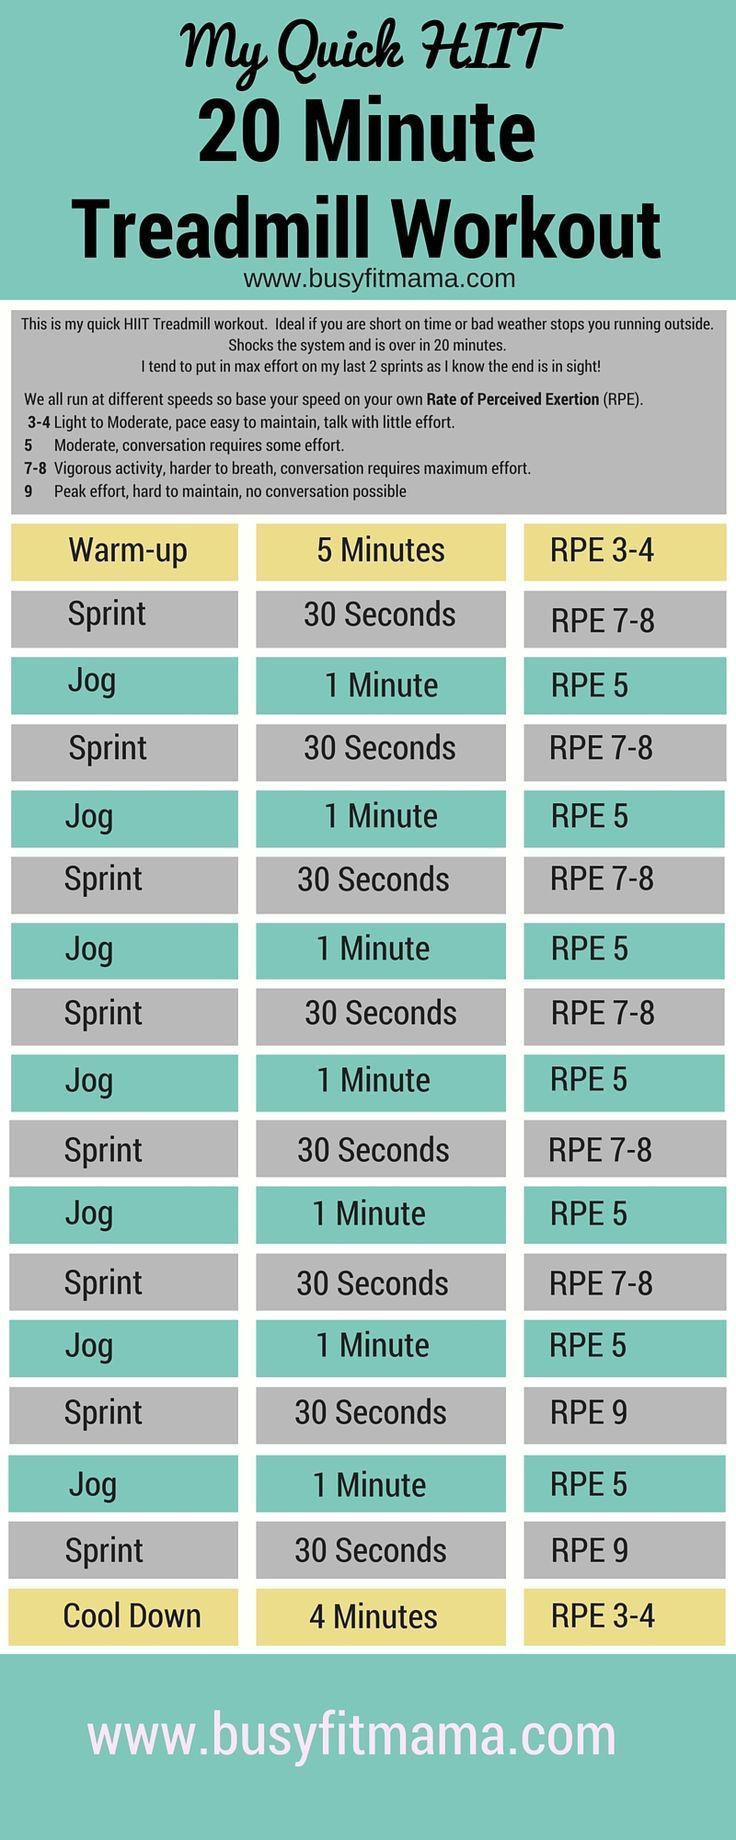 Quick Hiit 20 Minute Treadmill Workout Busyfitmama Com 20 Minute Treadmill Workout Hiit Treadmill Hiit Workouts Treadmill